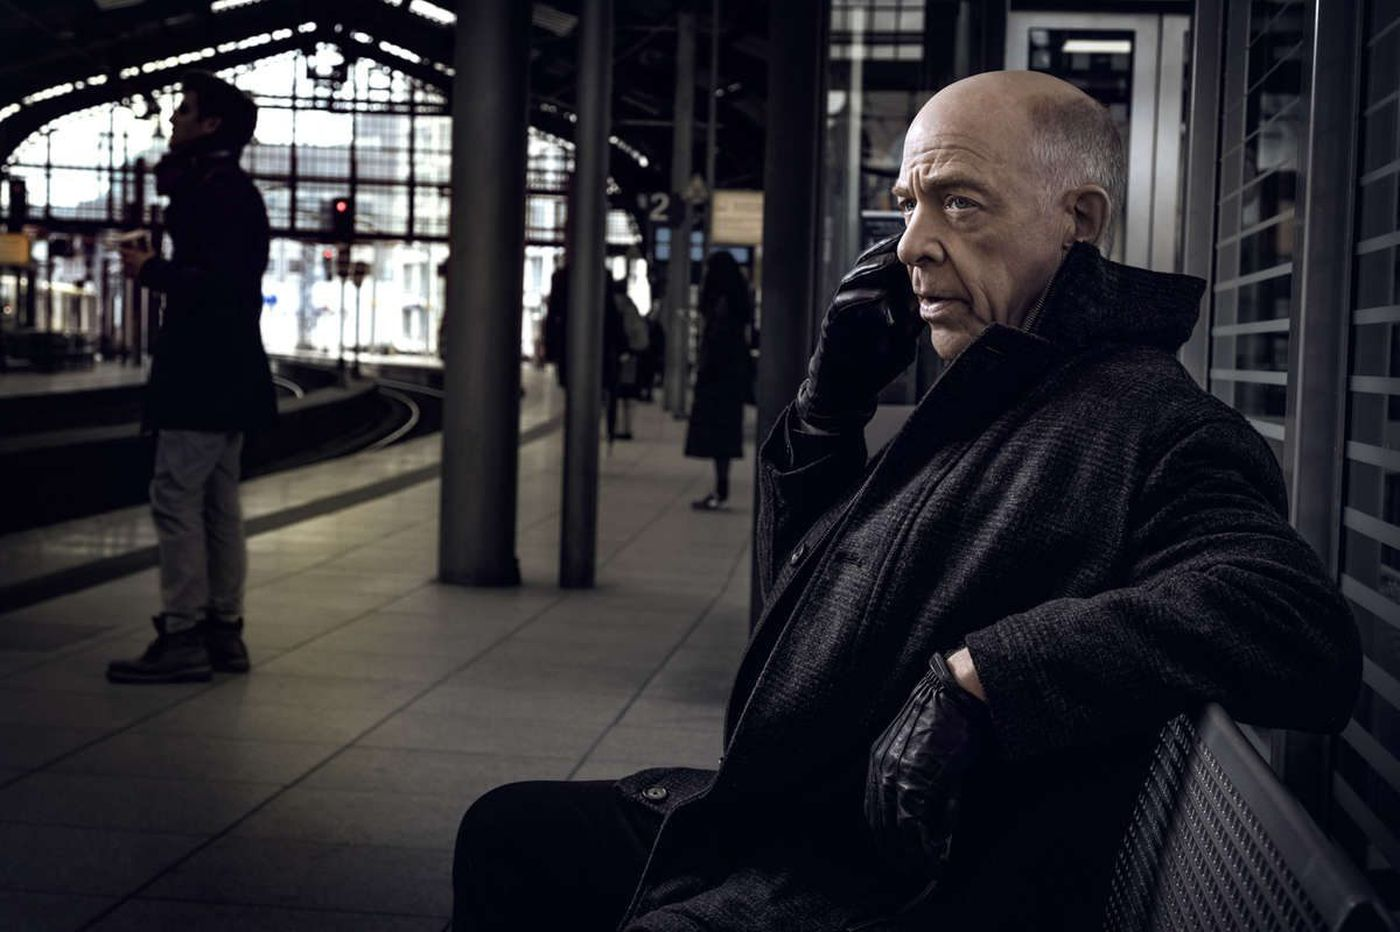 J.K. Simmons talks about starring - opposite himself - in Starz spy drama 'Counterpart'